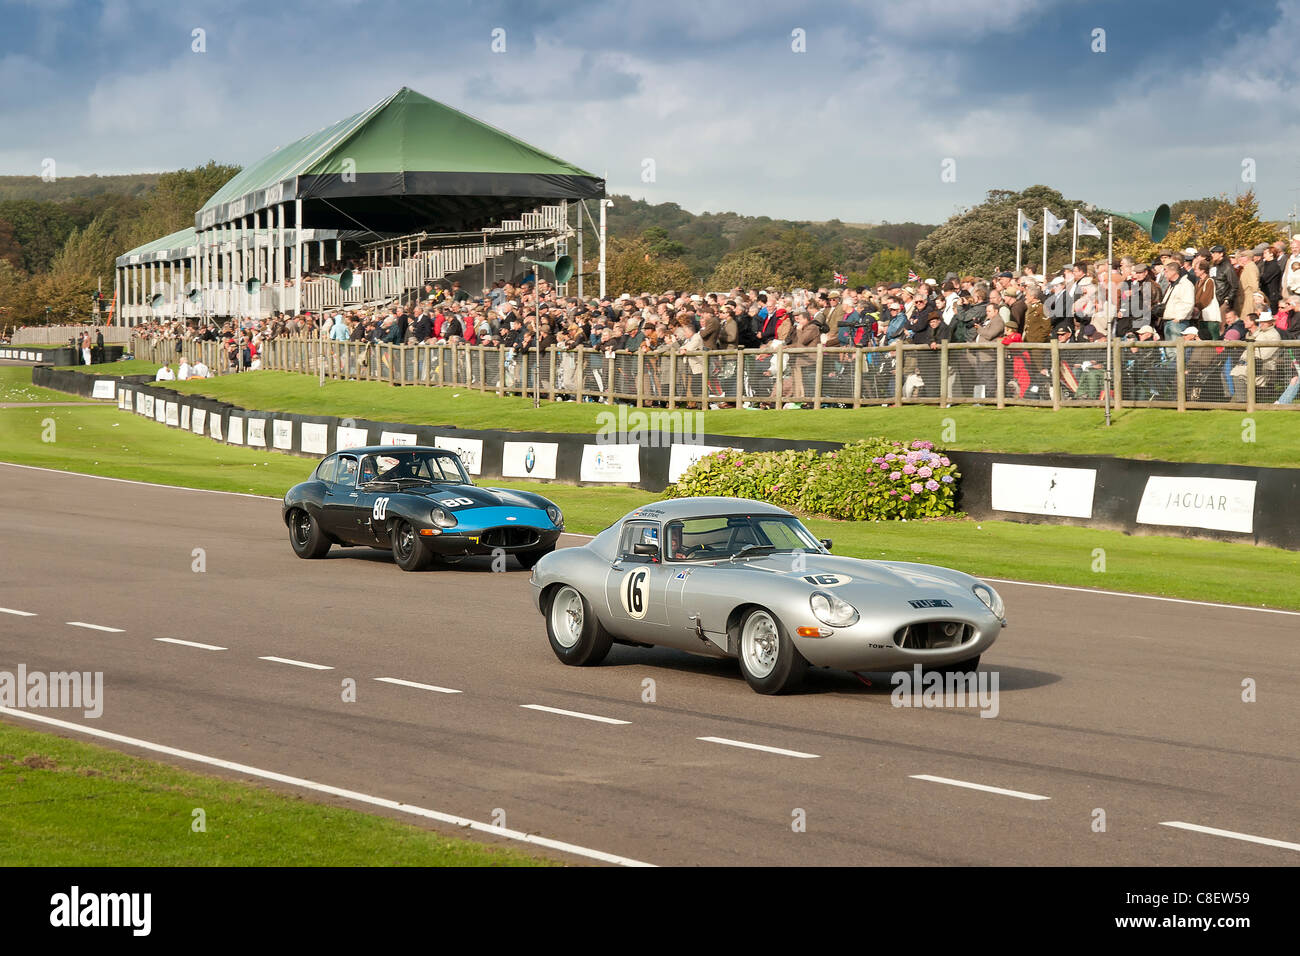 E type Jaguar's racing at Goodwood - Stock Image